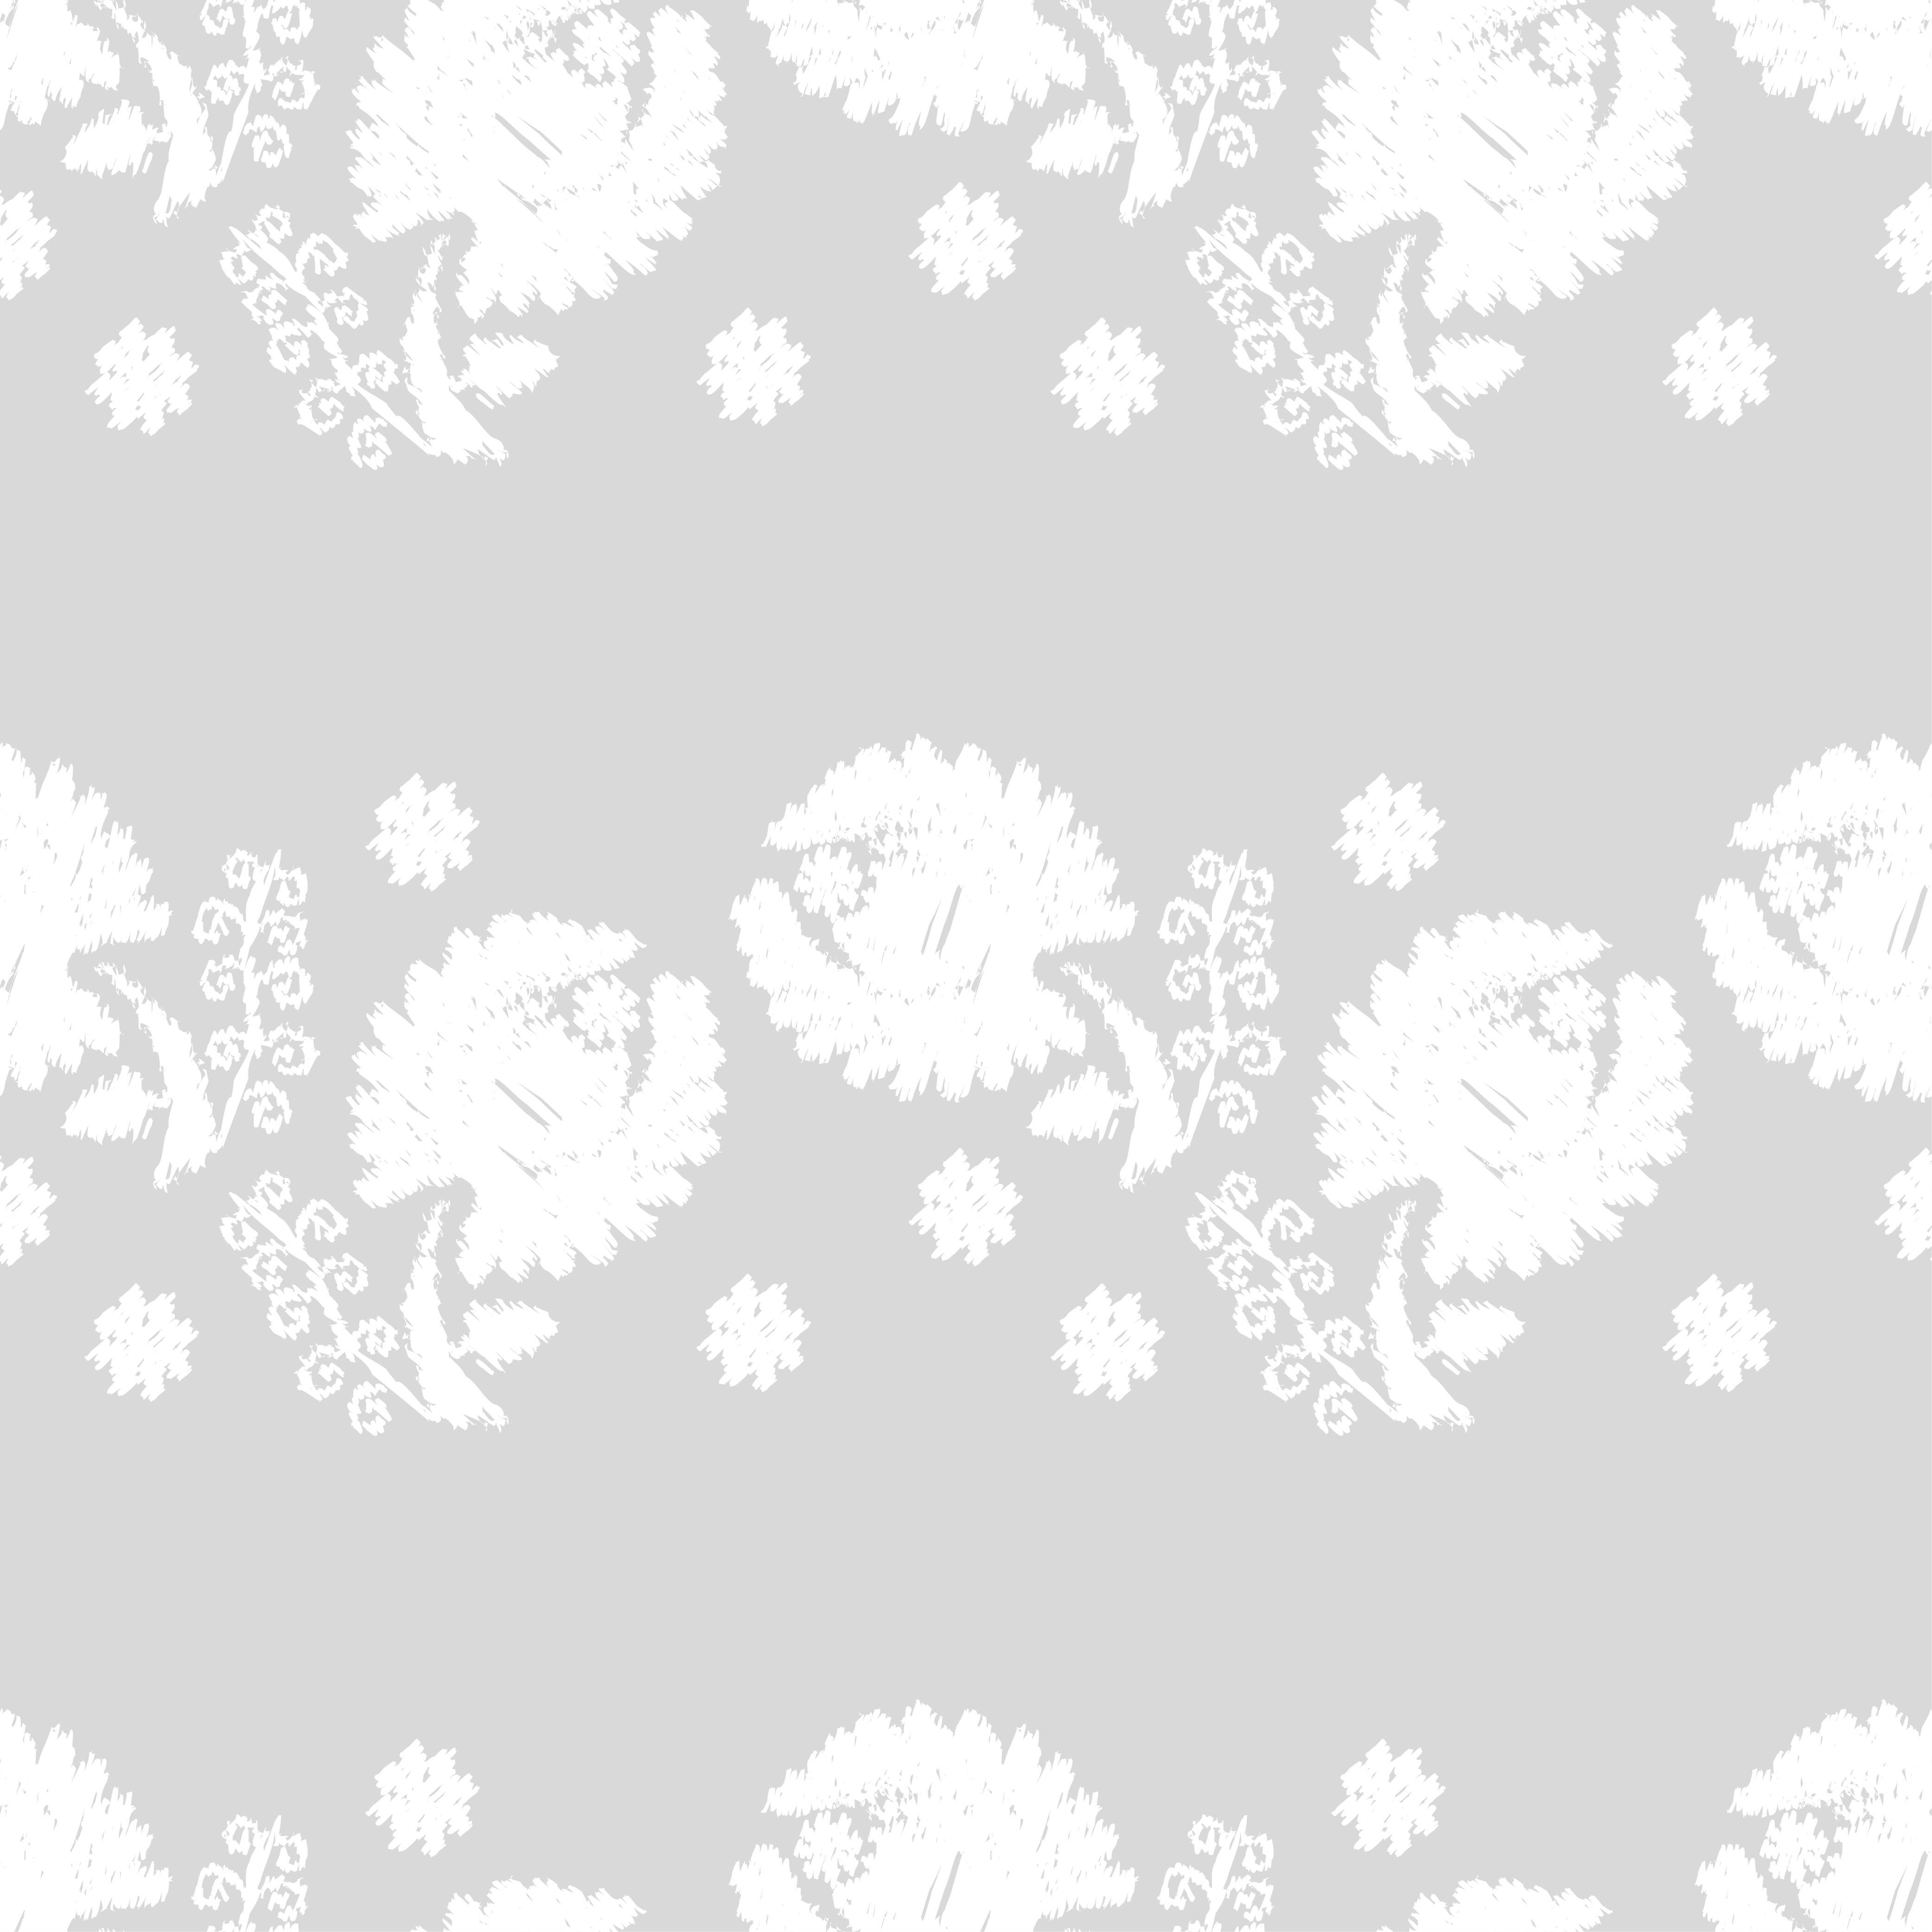 Set of 6 Seamless vector background. White flowers on a gray background. example image 4